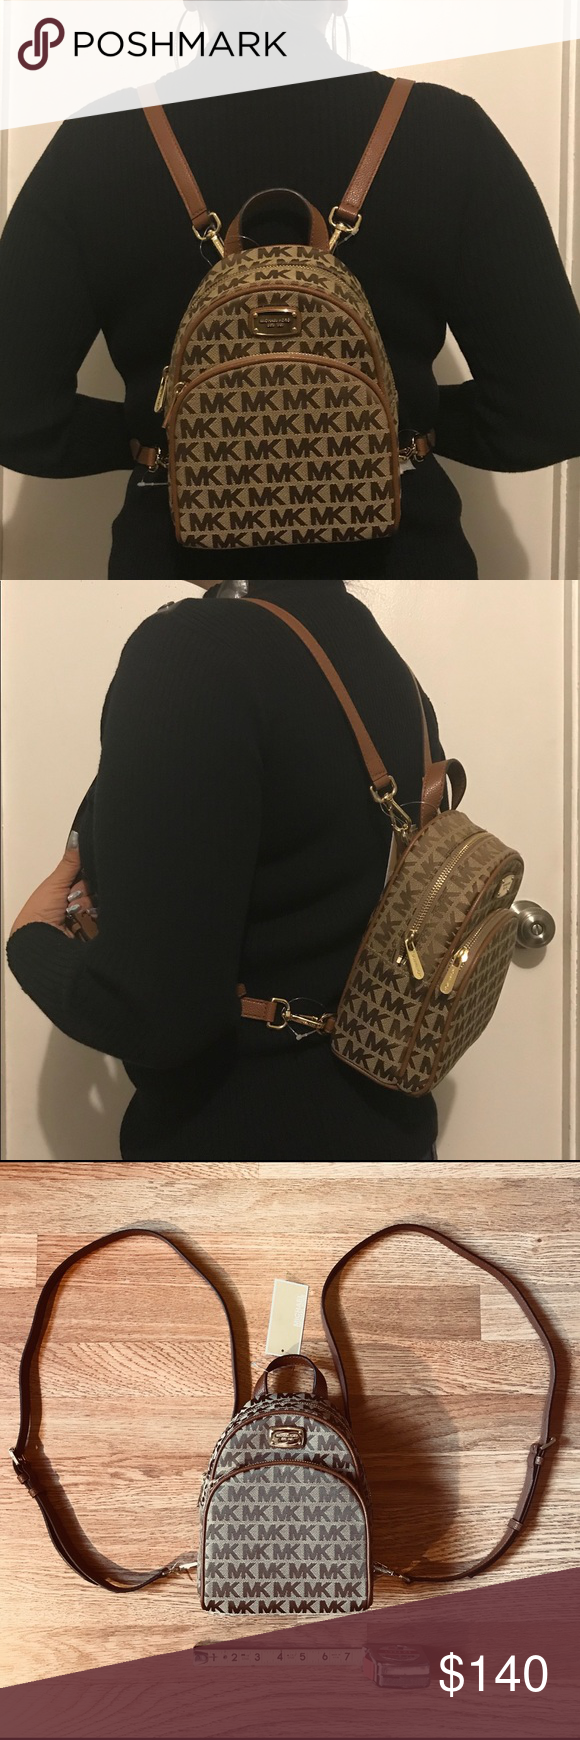 49aa857e43bcde NWT Michael Kors Abbey XS Mini Backpack in Beige Michael Kors Abbey XS  Backpack in Beige • New with tag • 100% authentic • UPC #38H7YAYBOJ •  Approx.